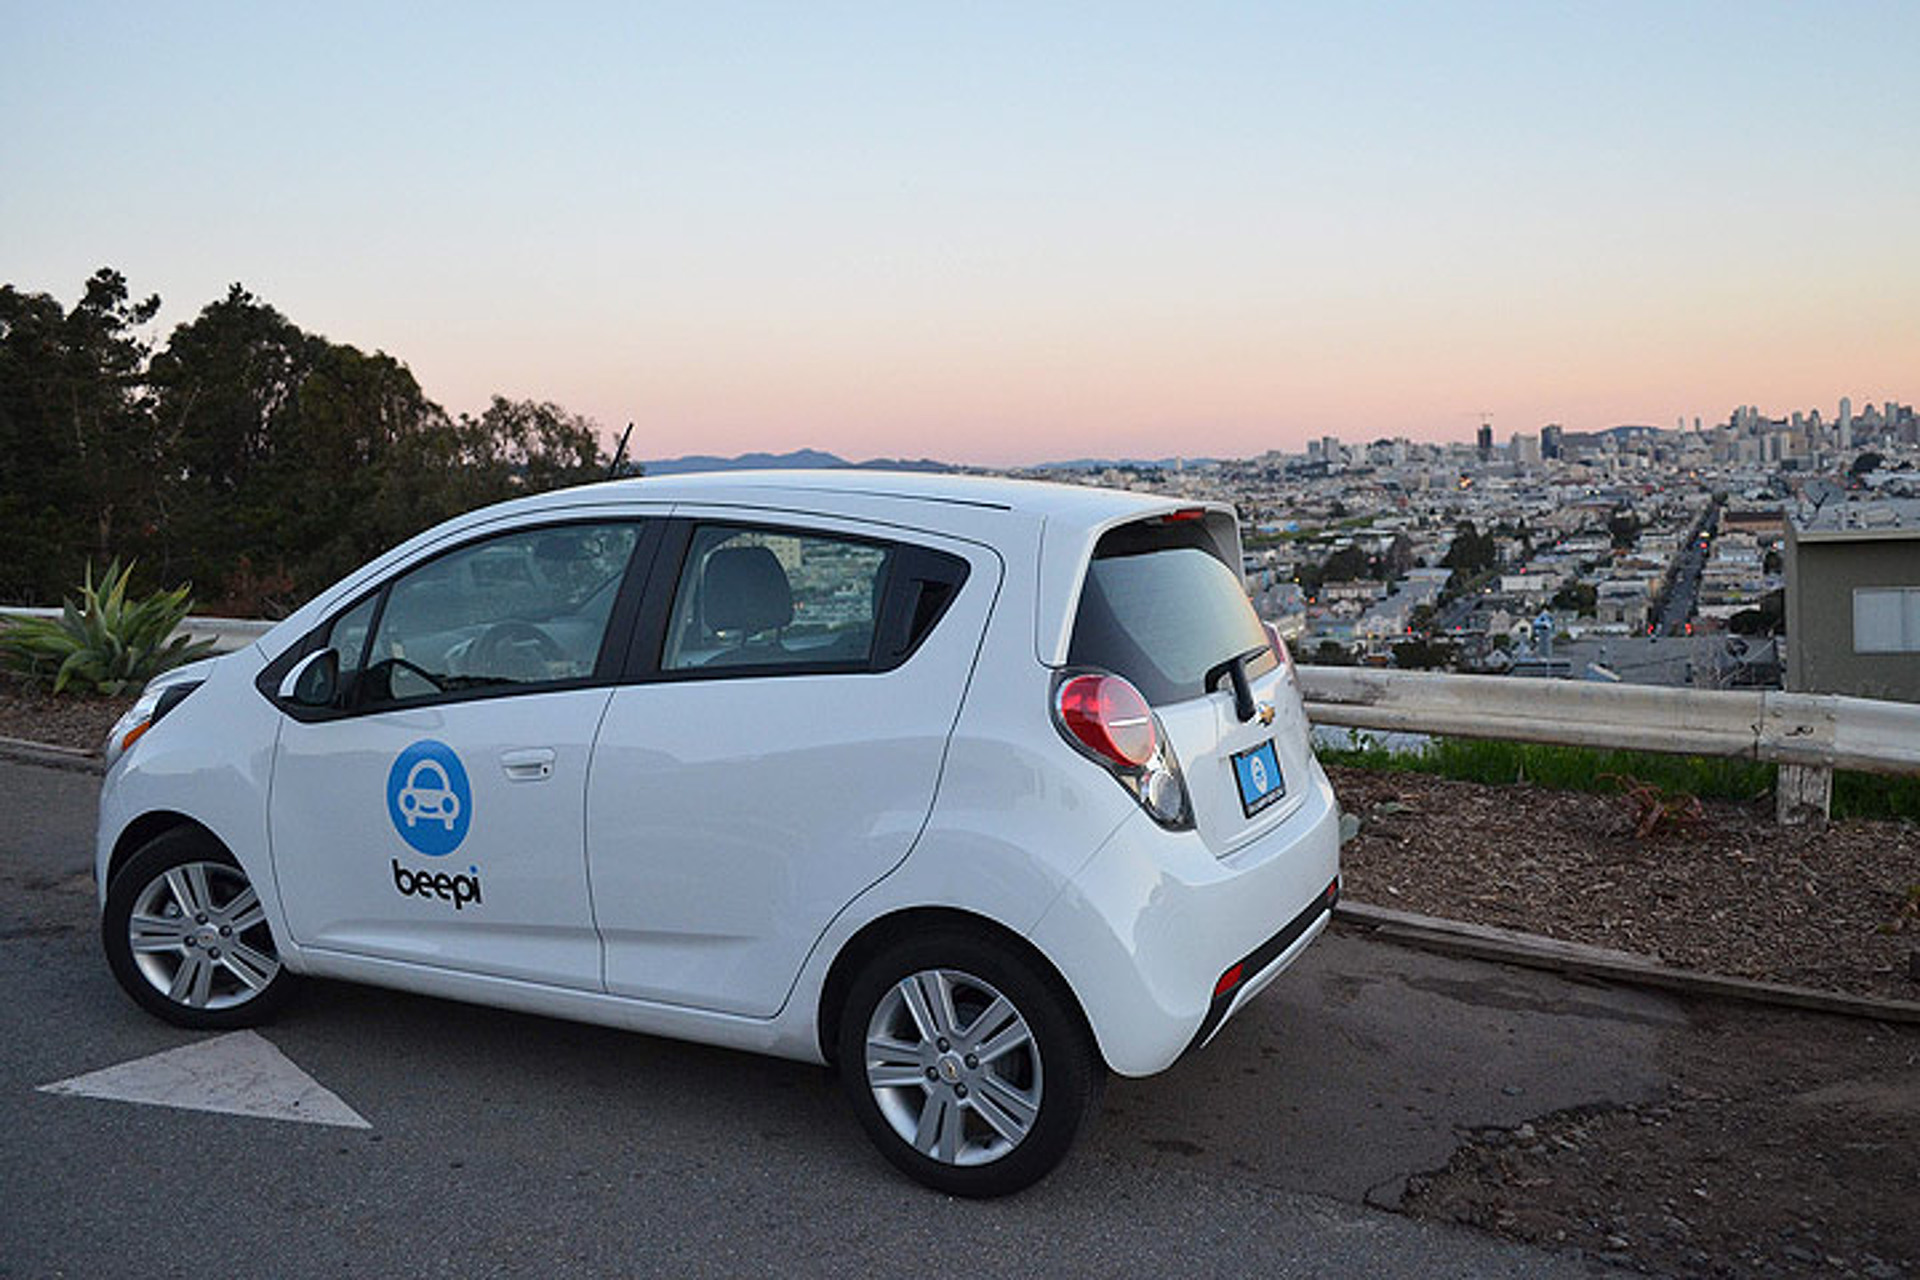 New Company Beepi is Changing How People Buy and Sell Cars